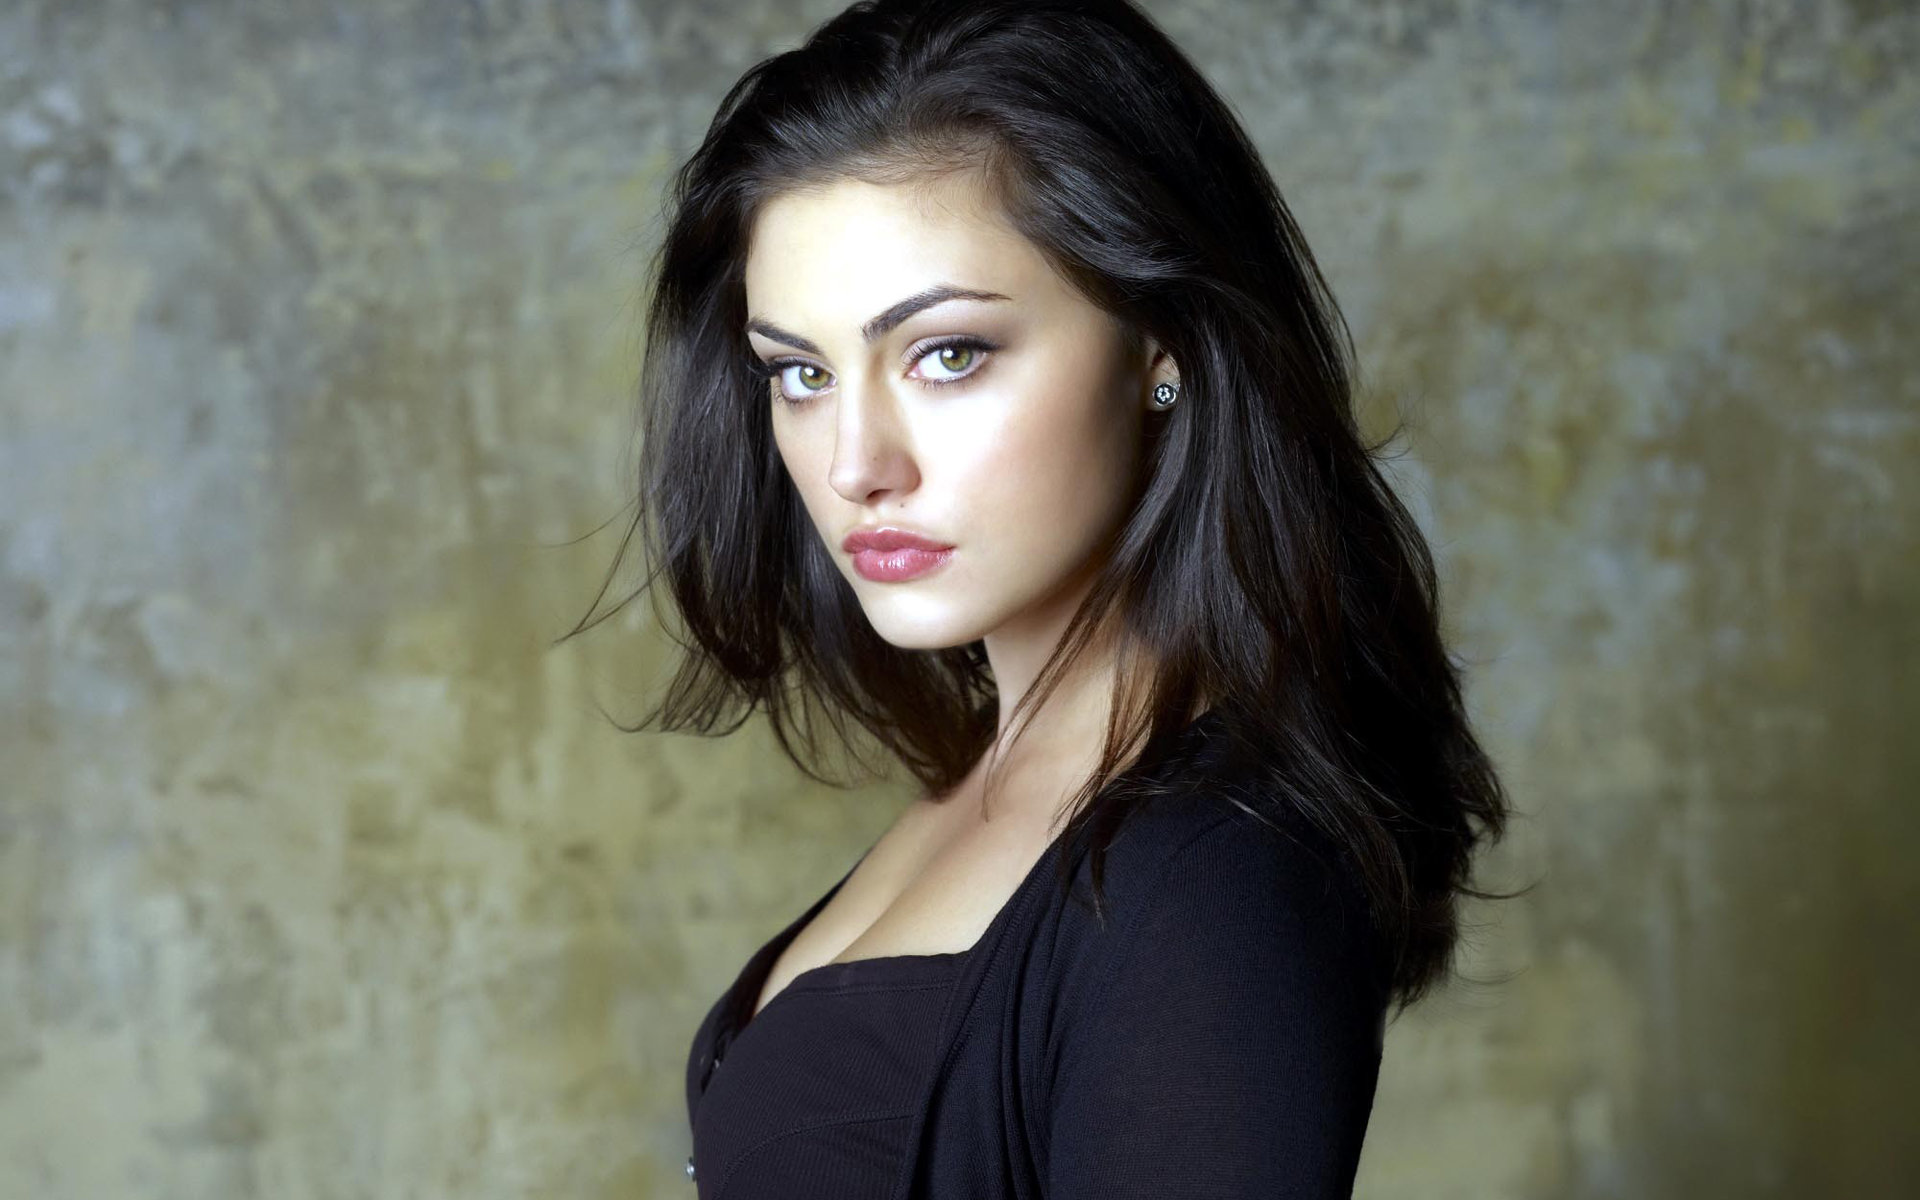 High resolution Phoebe Tonkin hd 1920x1200 background ID:318607 for desktop